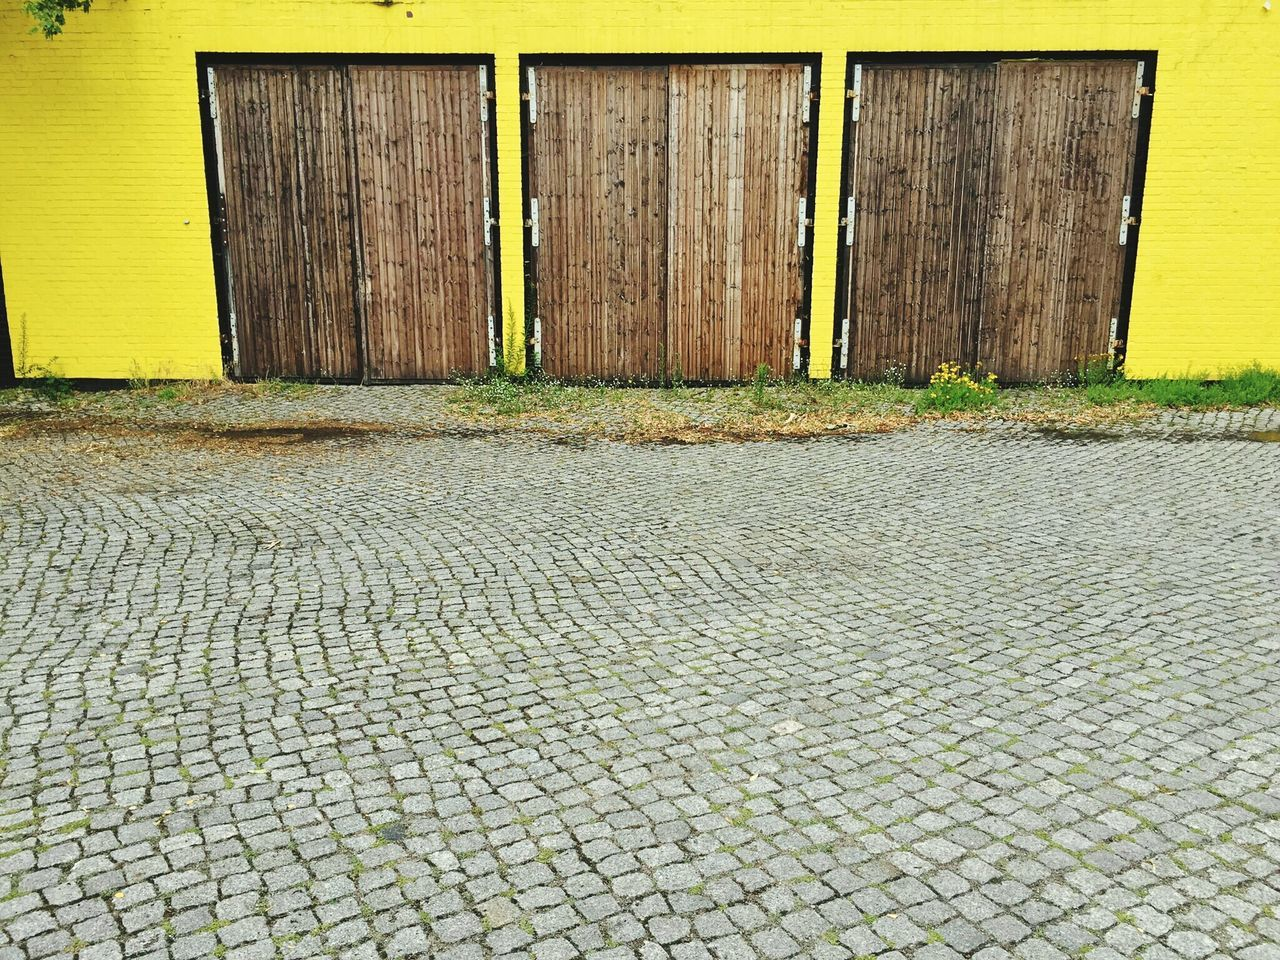 Architecture Garage Doors Yellow Wall Doors Wooden Doors Art Stone Ground